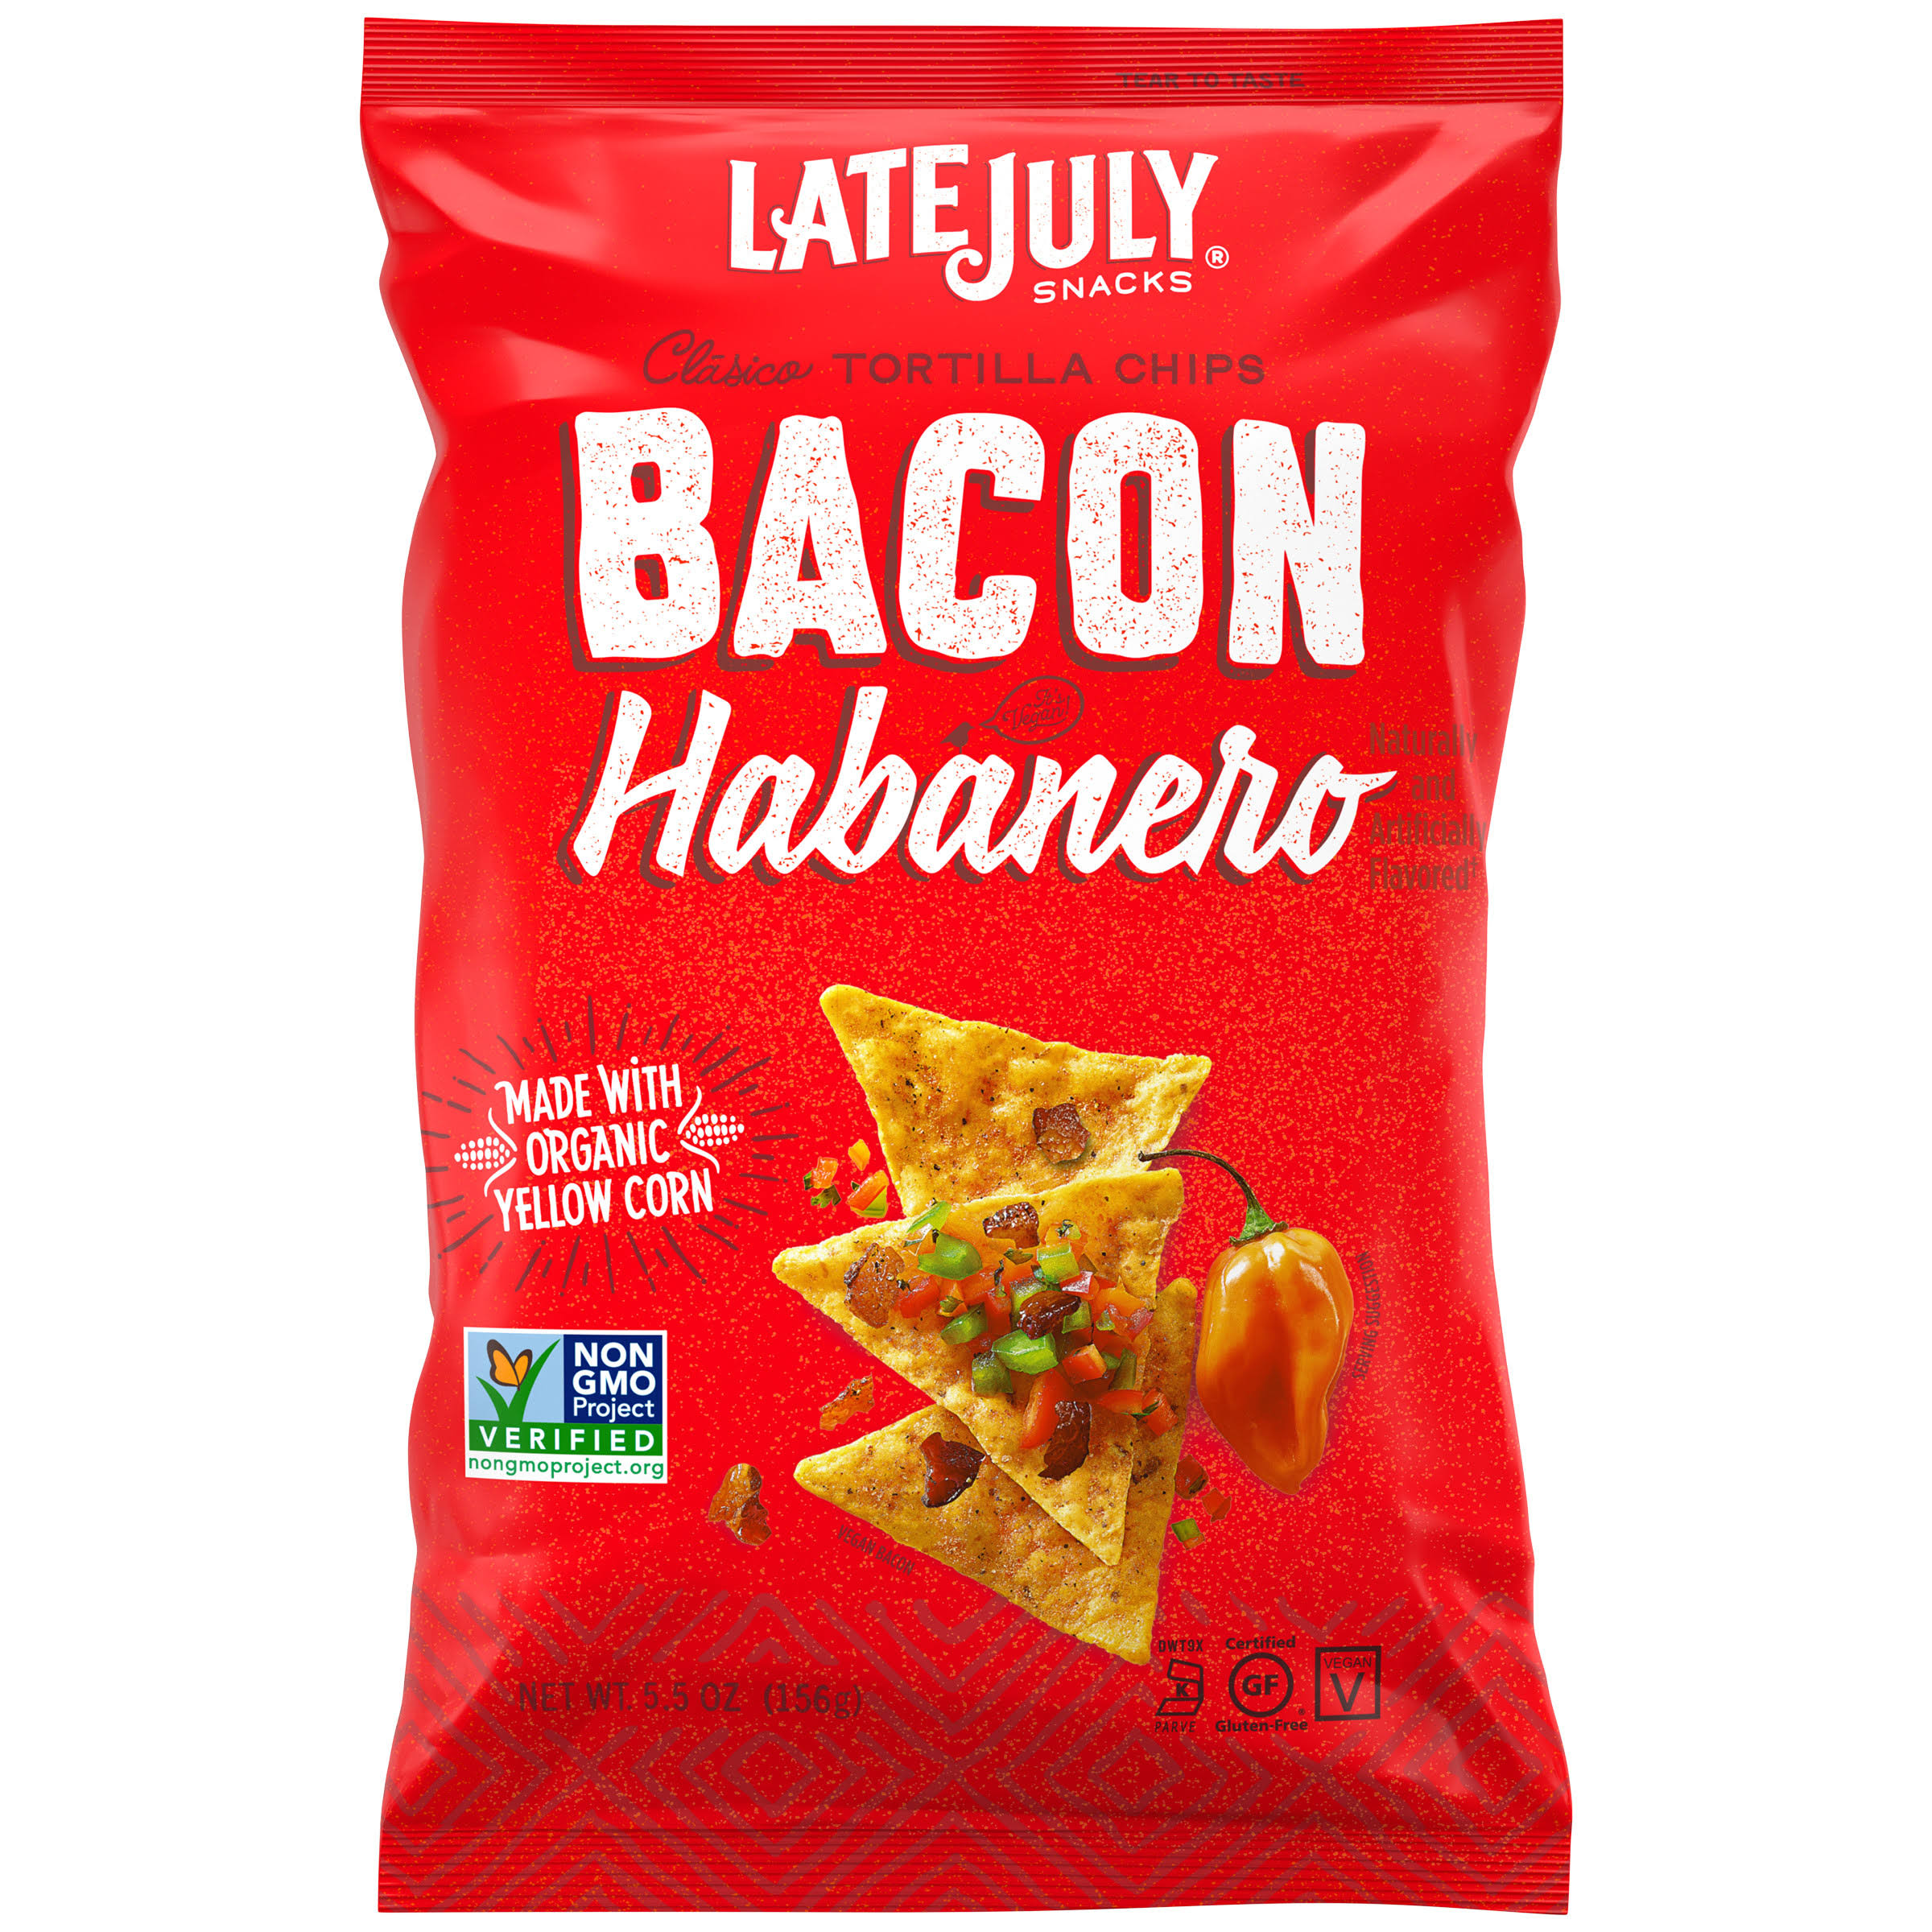 Late July Tortilla Chips, Clasico, Bacon Habanero - 5.5 oz